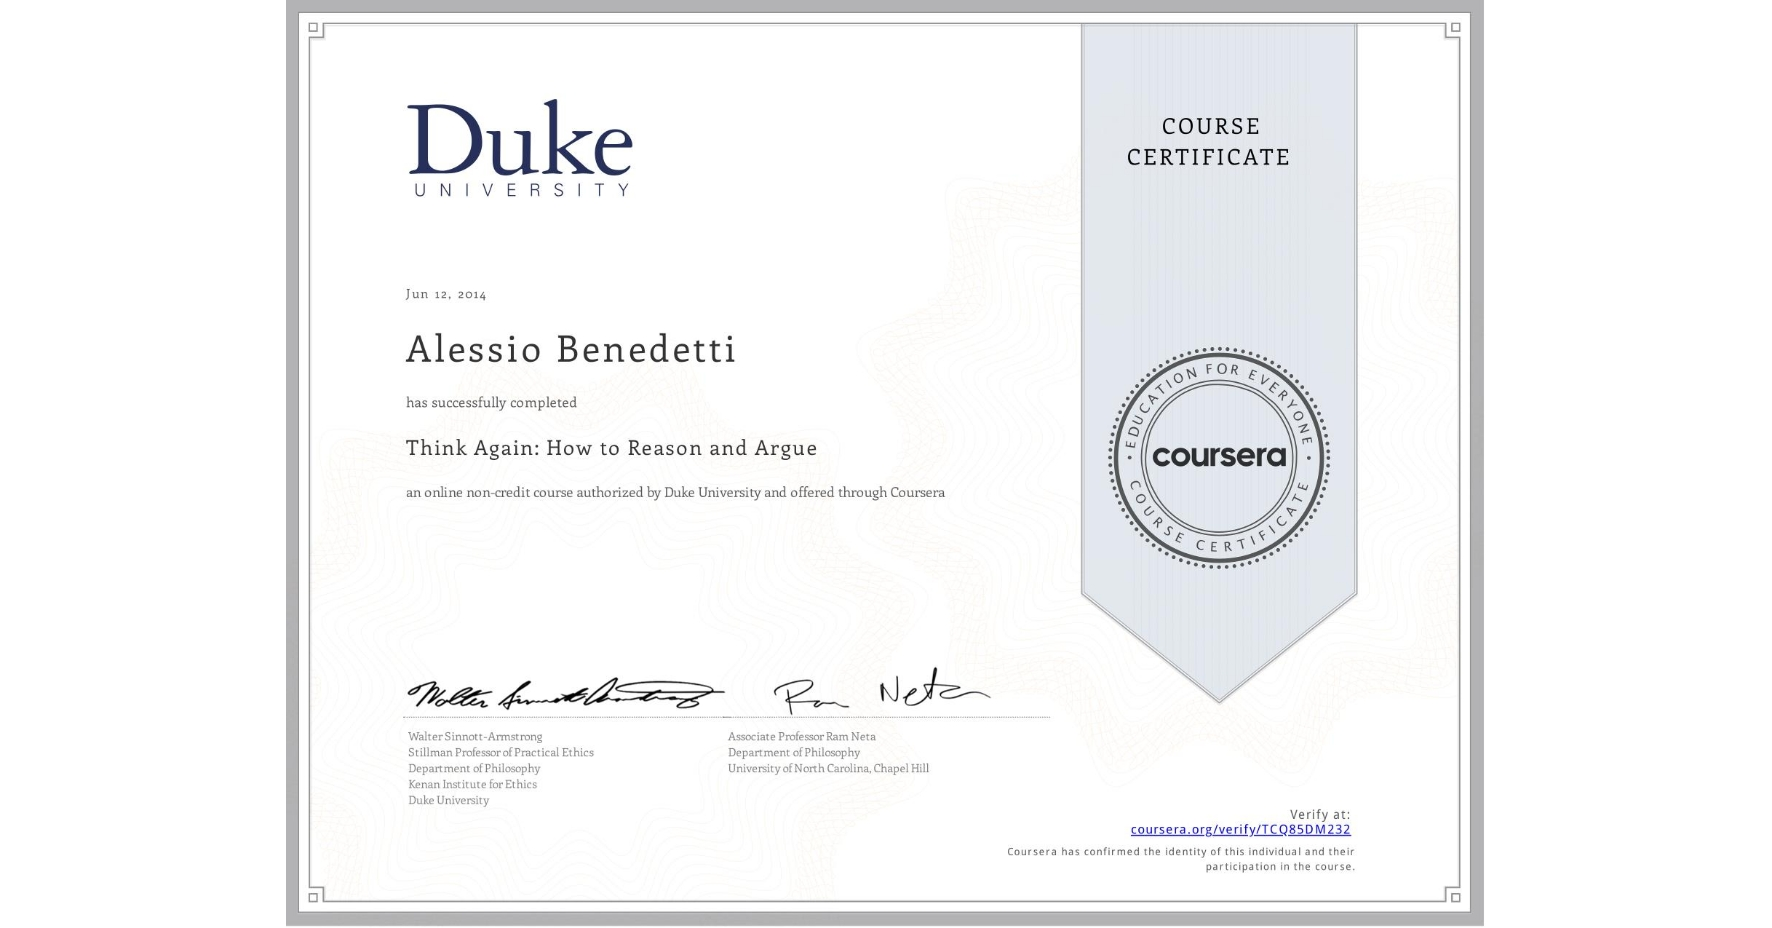 View certificate for Alessio Benedetti, Think Again: How to Reason and Argue, an online non-credit course authorized by Duke University and offered through Coursera